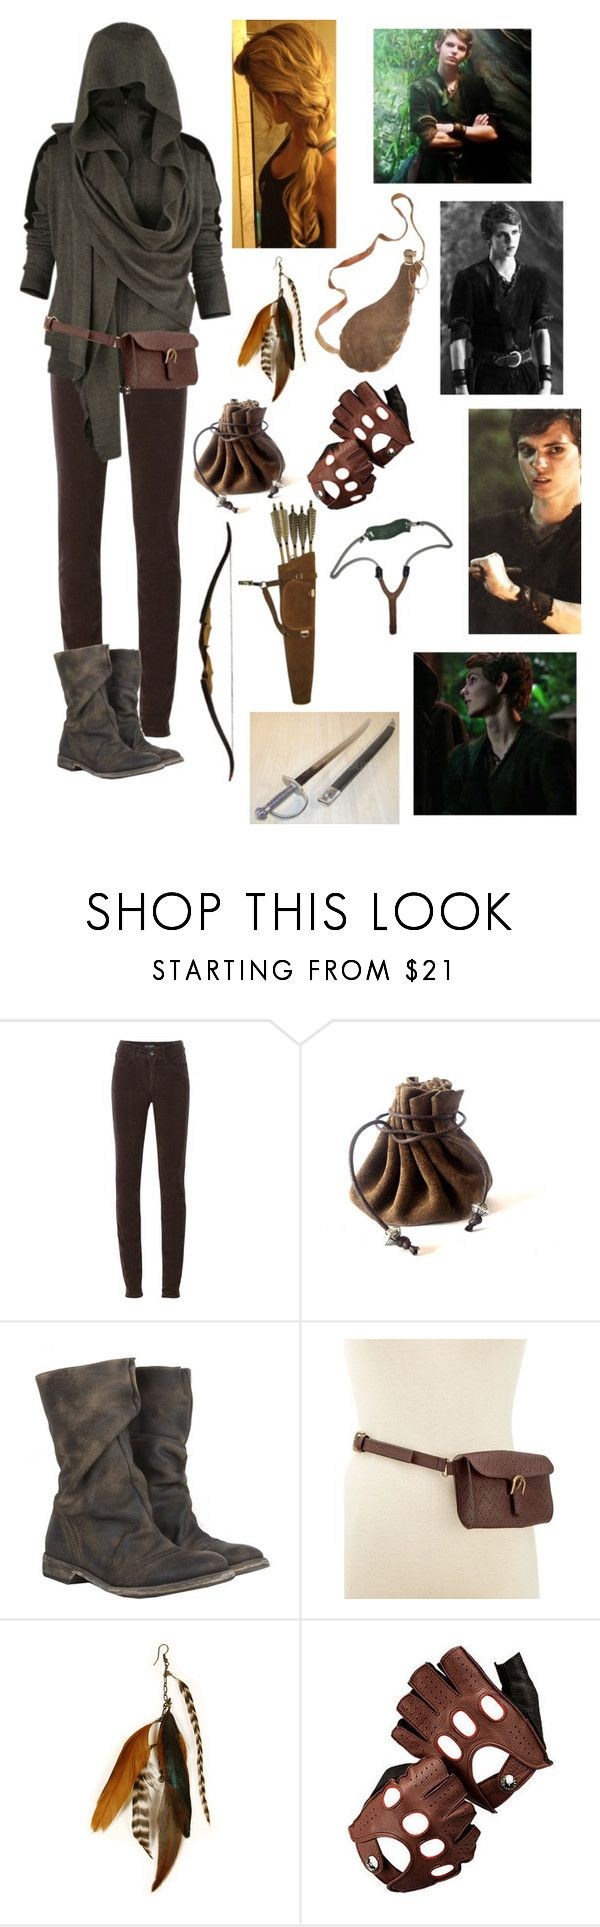 """""""Lost Girl - Peter Pan"""" by blackwidow321 ❤ liked on Polyvore featuring Armani Jeans, AllSaints, Style & Co., Gilded Lily Goods, Aspinal of London, Once Upon a Time, peterpan, marvel, ouat and DC"""